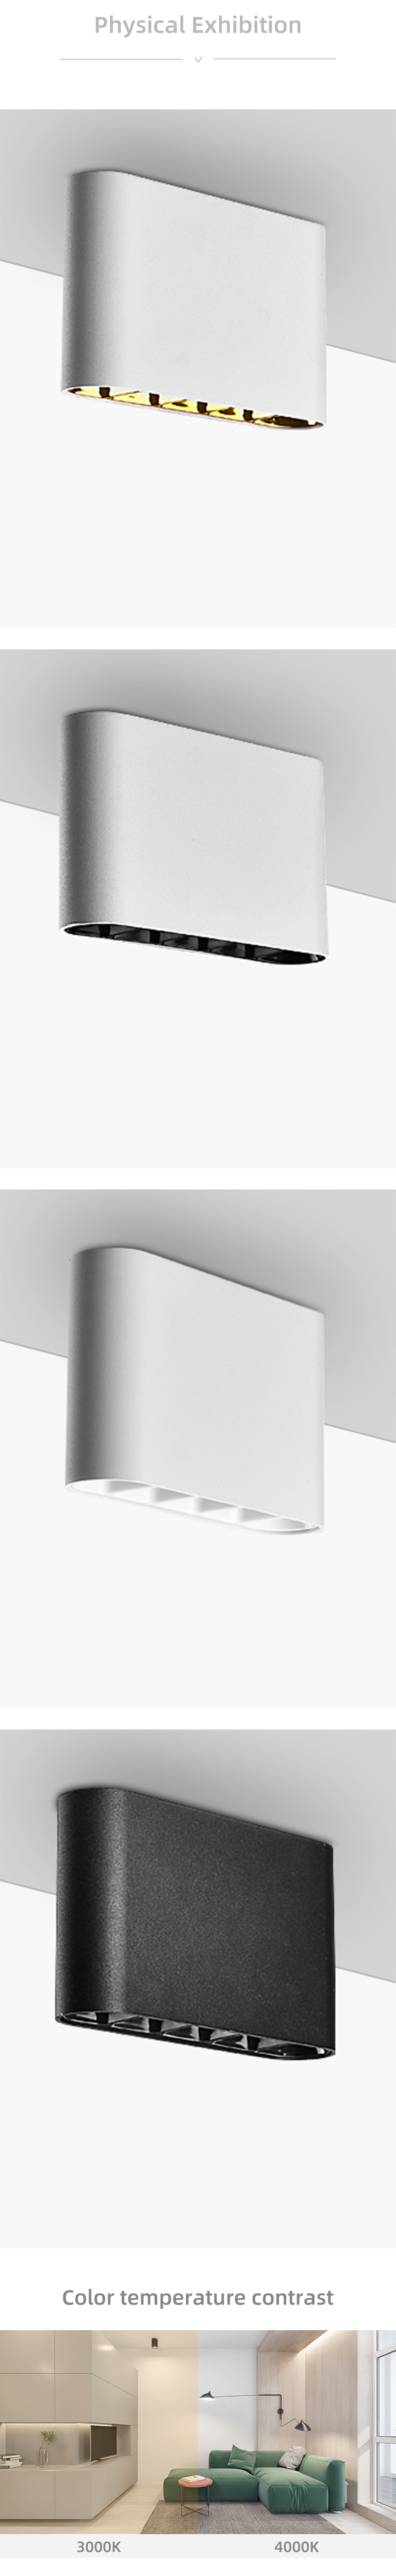 H76921bcf0a7346499af0c12b95fc5c5bj - SCON Creative Surface Mounted Spotlight Led Ceiling Lamp Dimmable Lighting fashion Home Decoration for Living room Lighting